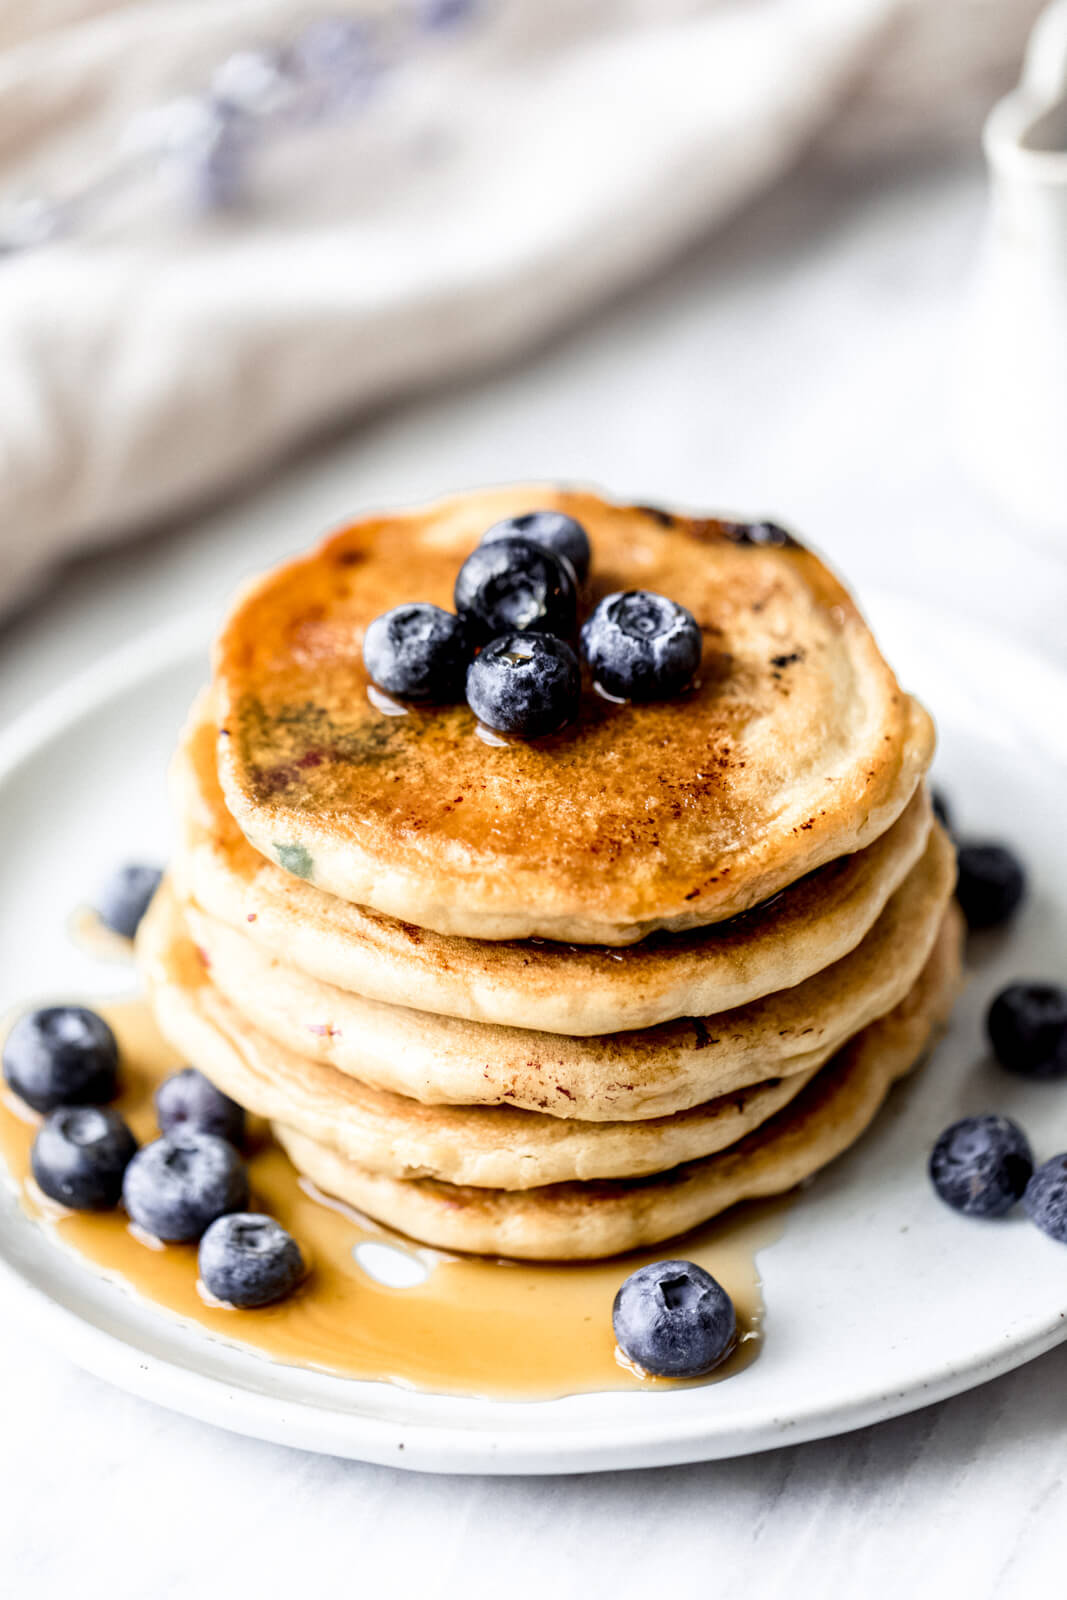 almond flour pancakes with blueberries on top